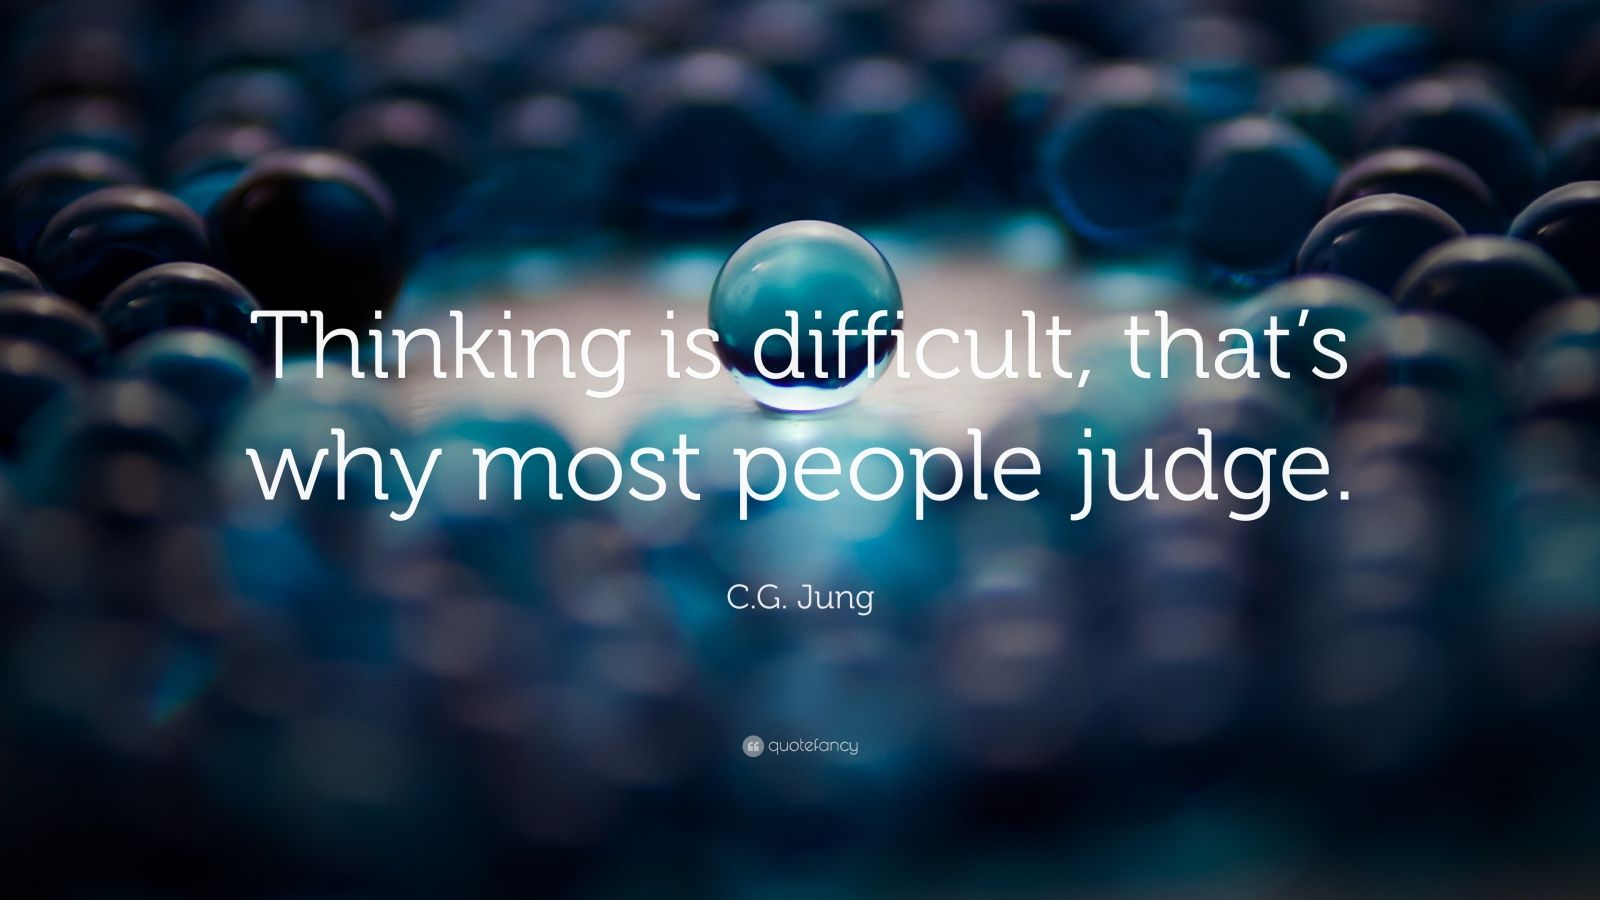 Buddha Hd Wallpaper 1080p C G Jung Quote Thinking Is Difficult That S Why Most